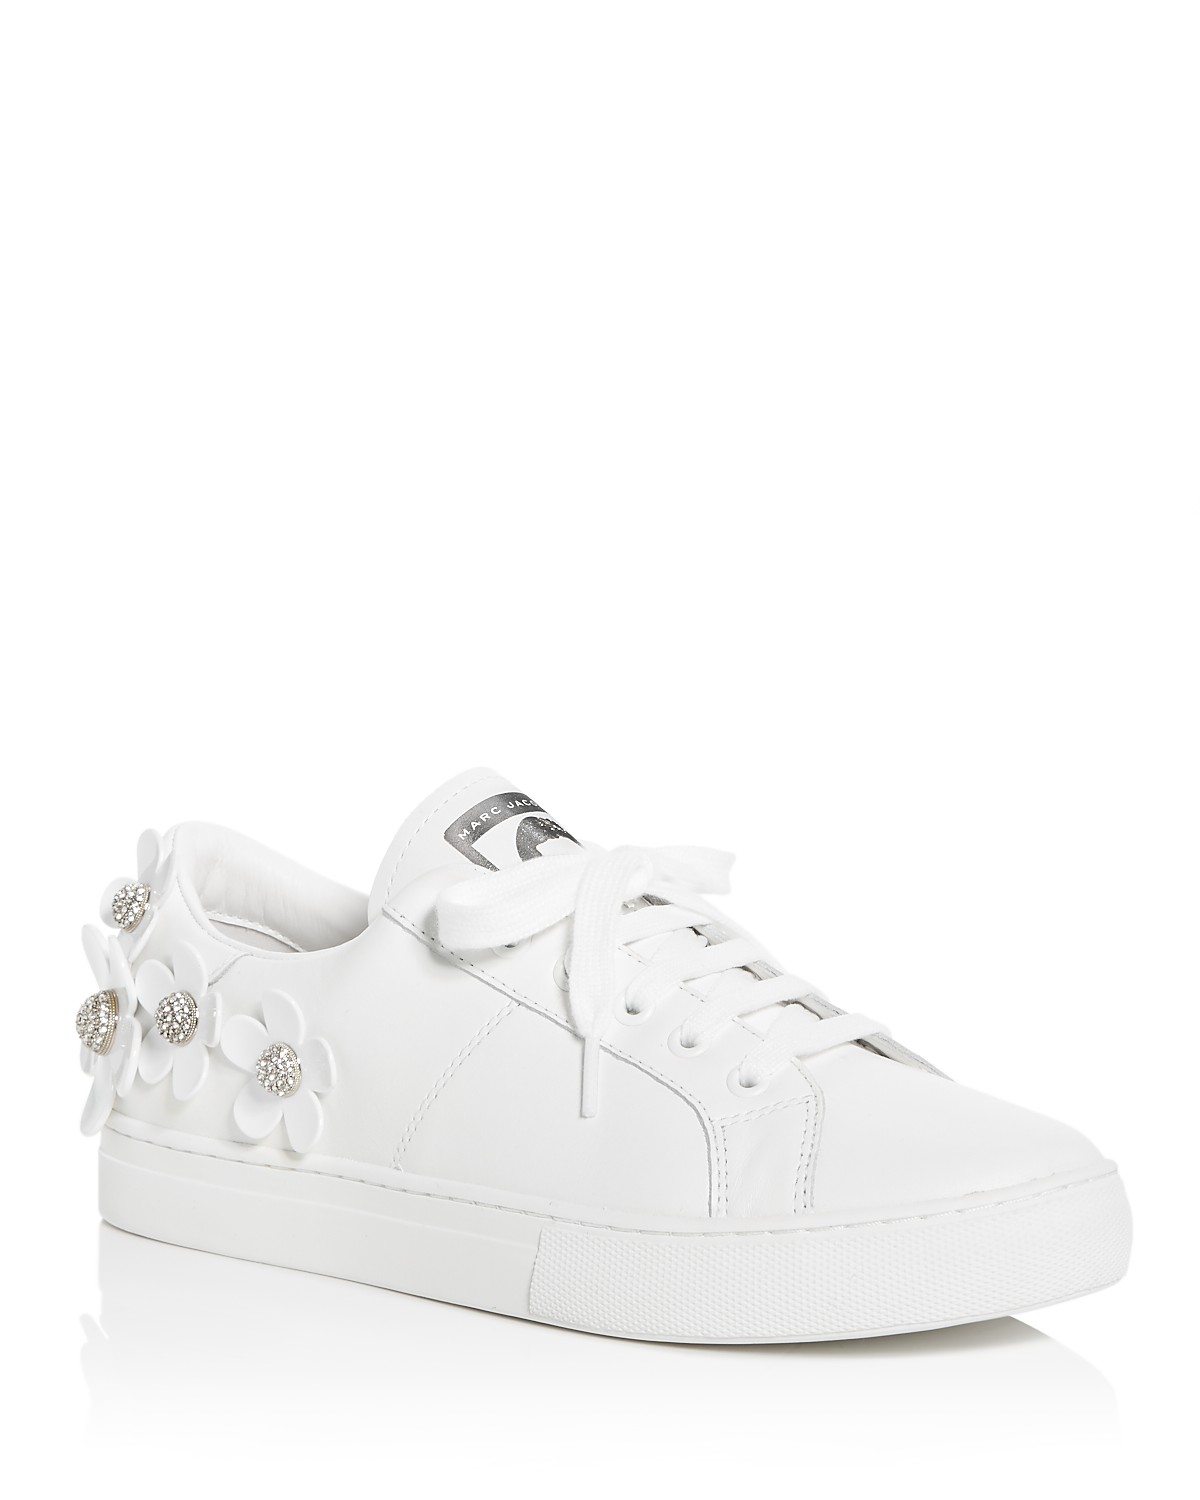 Marc Jacobs Women's Daisy Embellished Leather Lace Up Sneakers o1Rg691cc